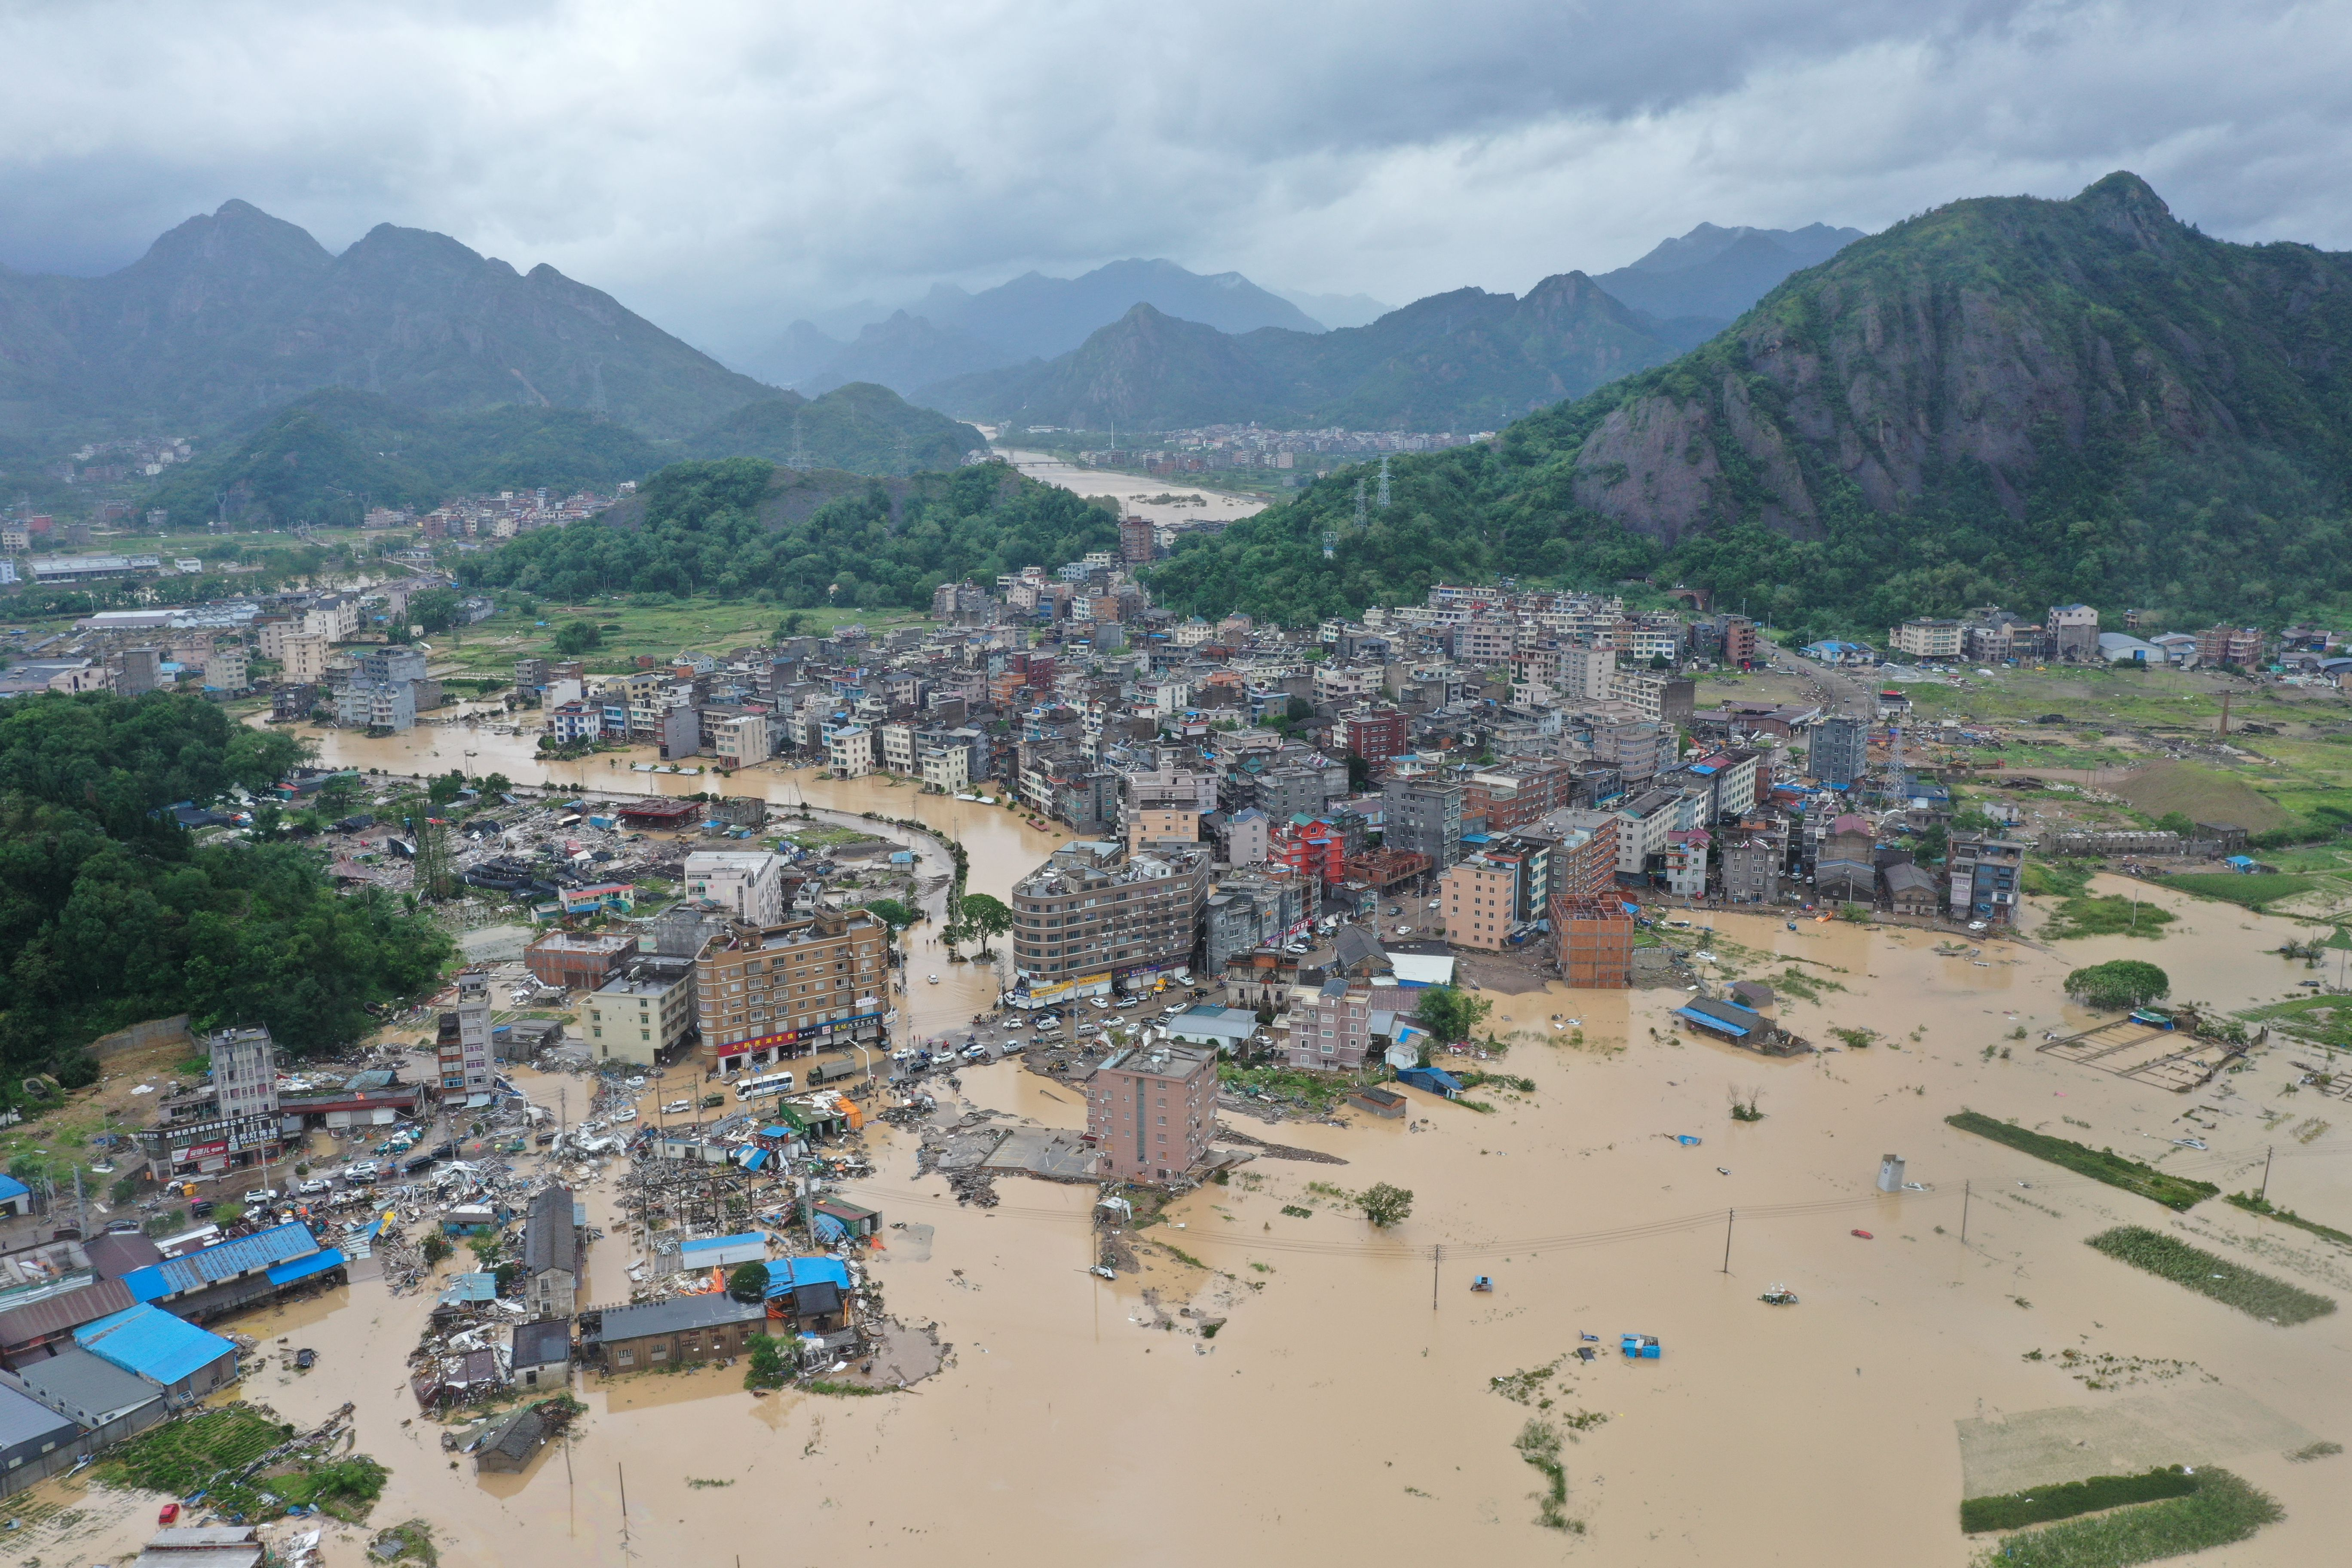 In photos: Deadly Typhoon Lekima forces 1 million people to evacuate in China